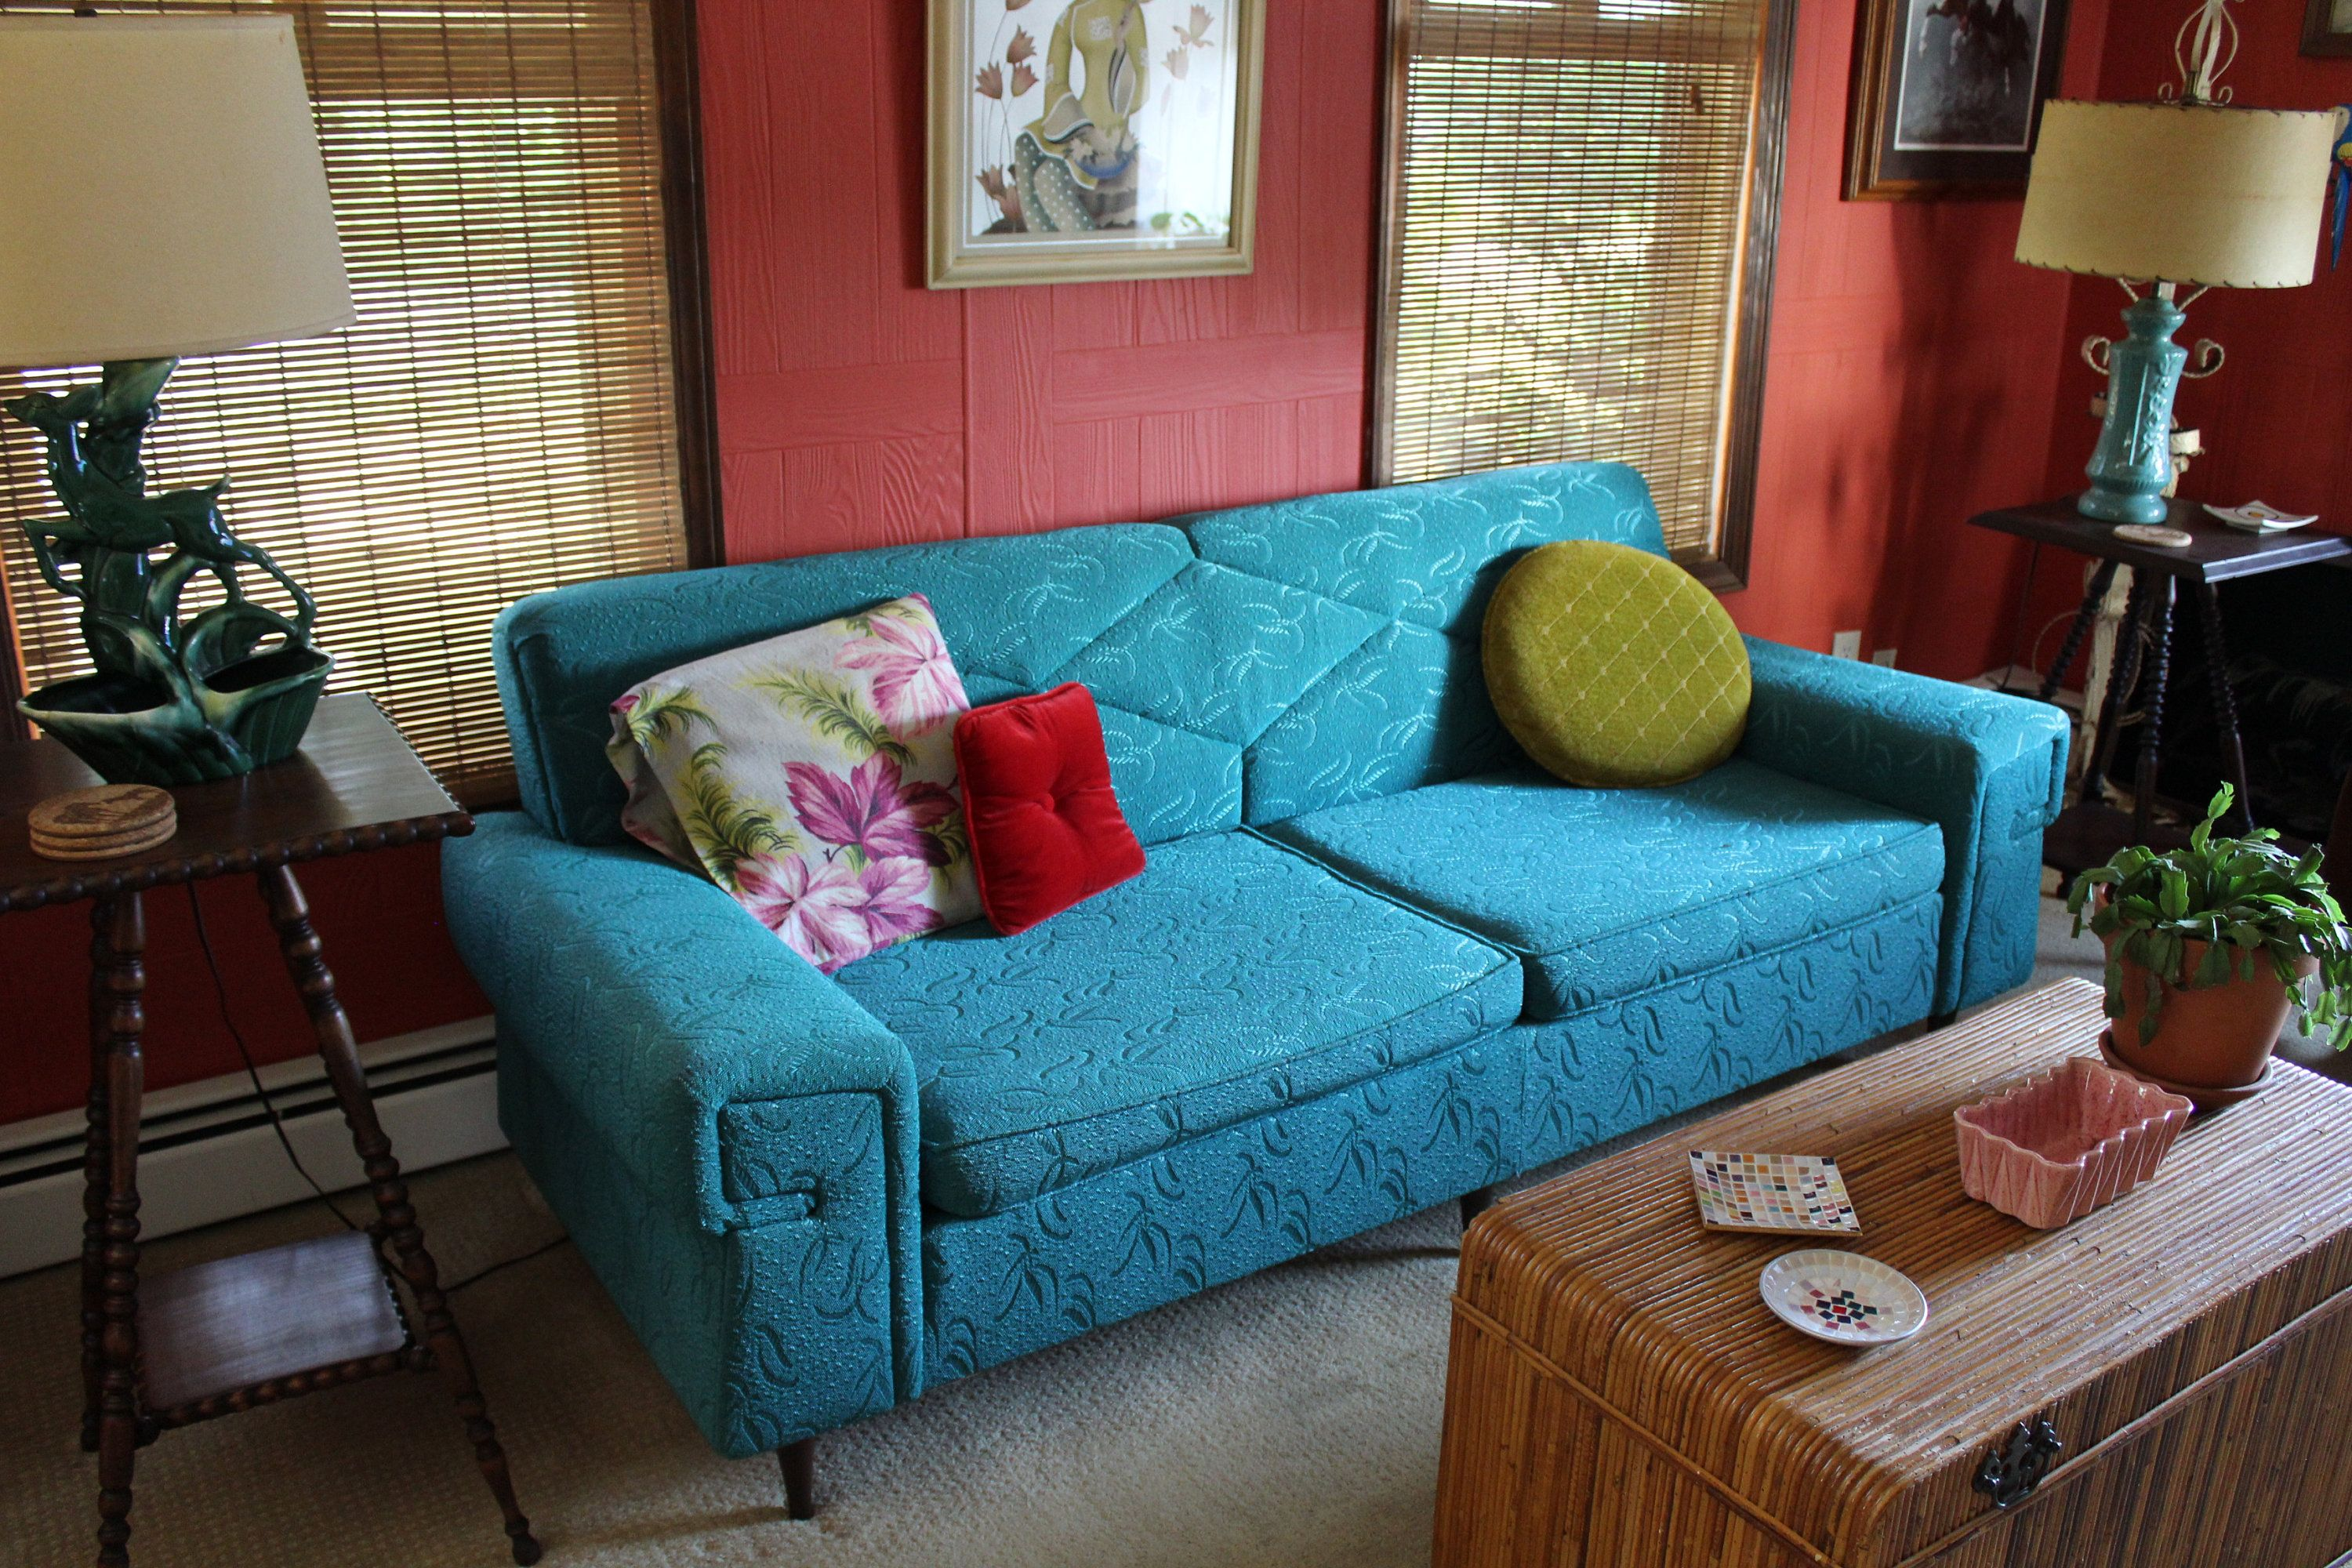 Midcentury Turquoise Couch Like New Condition Original